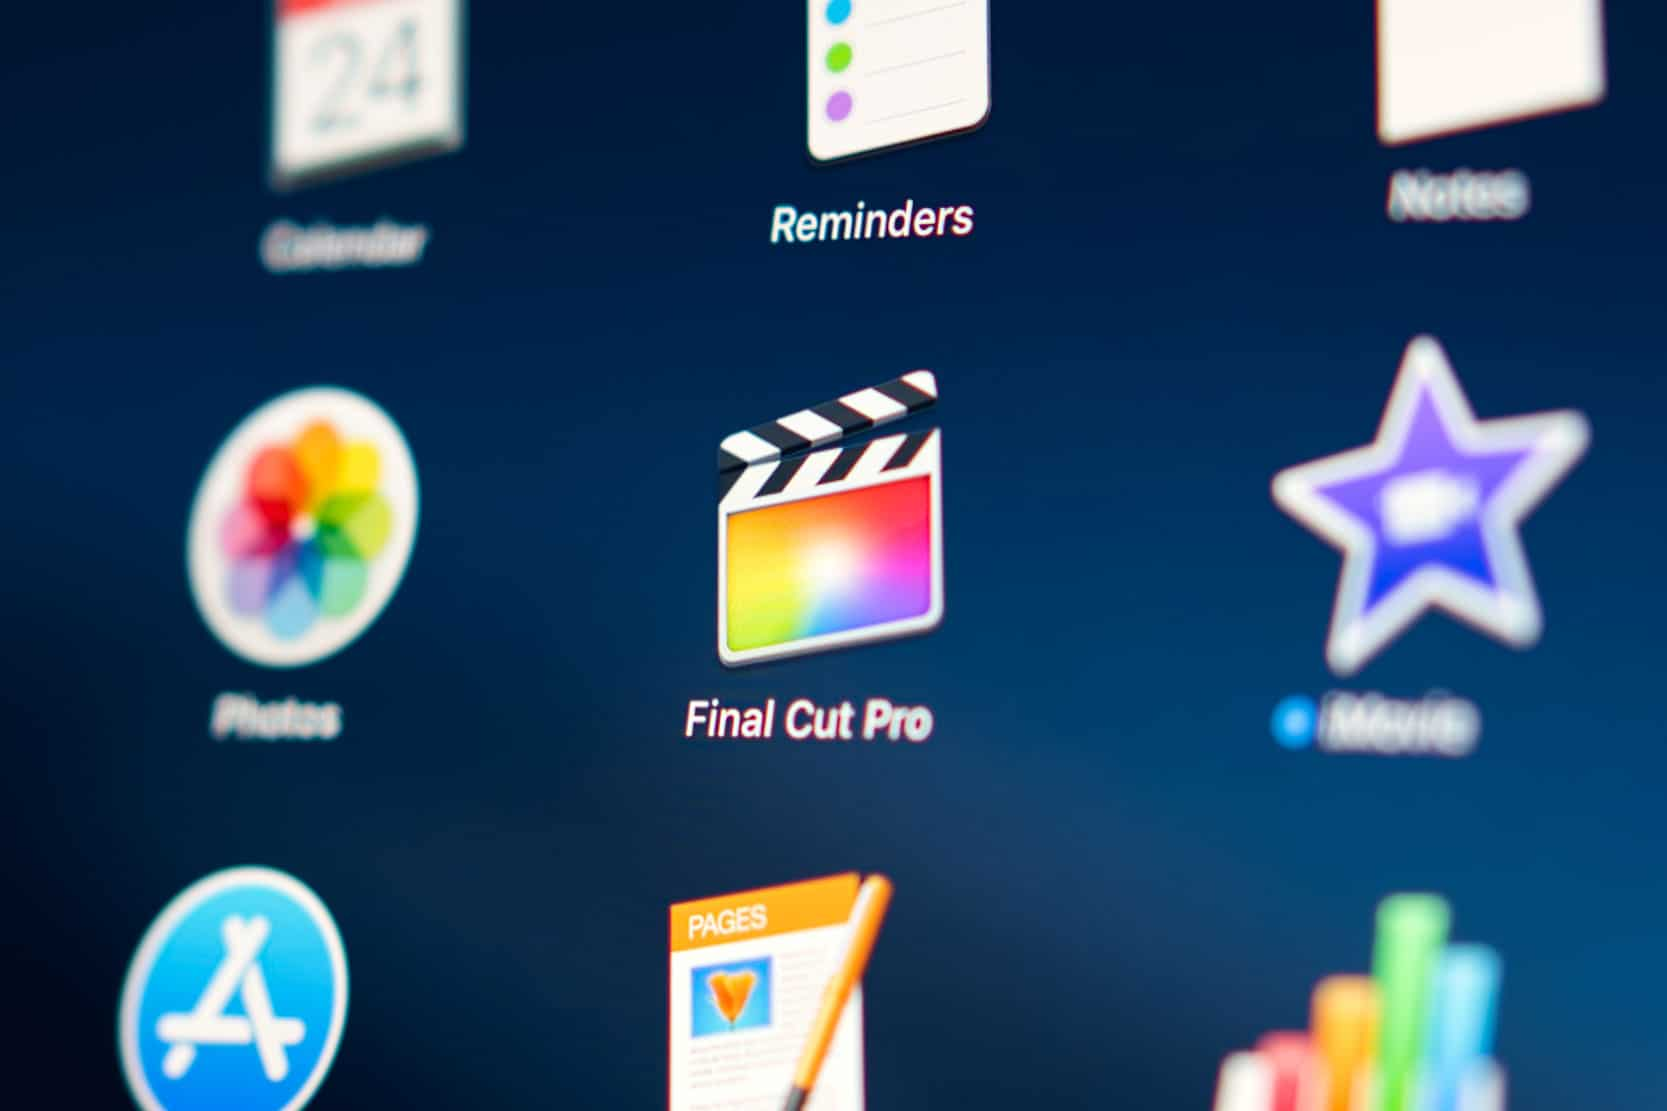 Final Cut Pro X app on Mac Dashboard